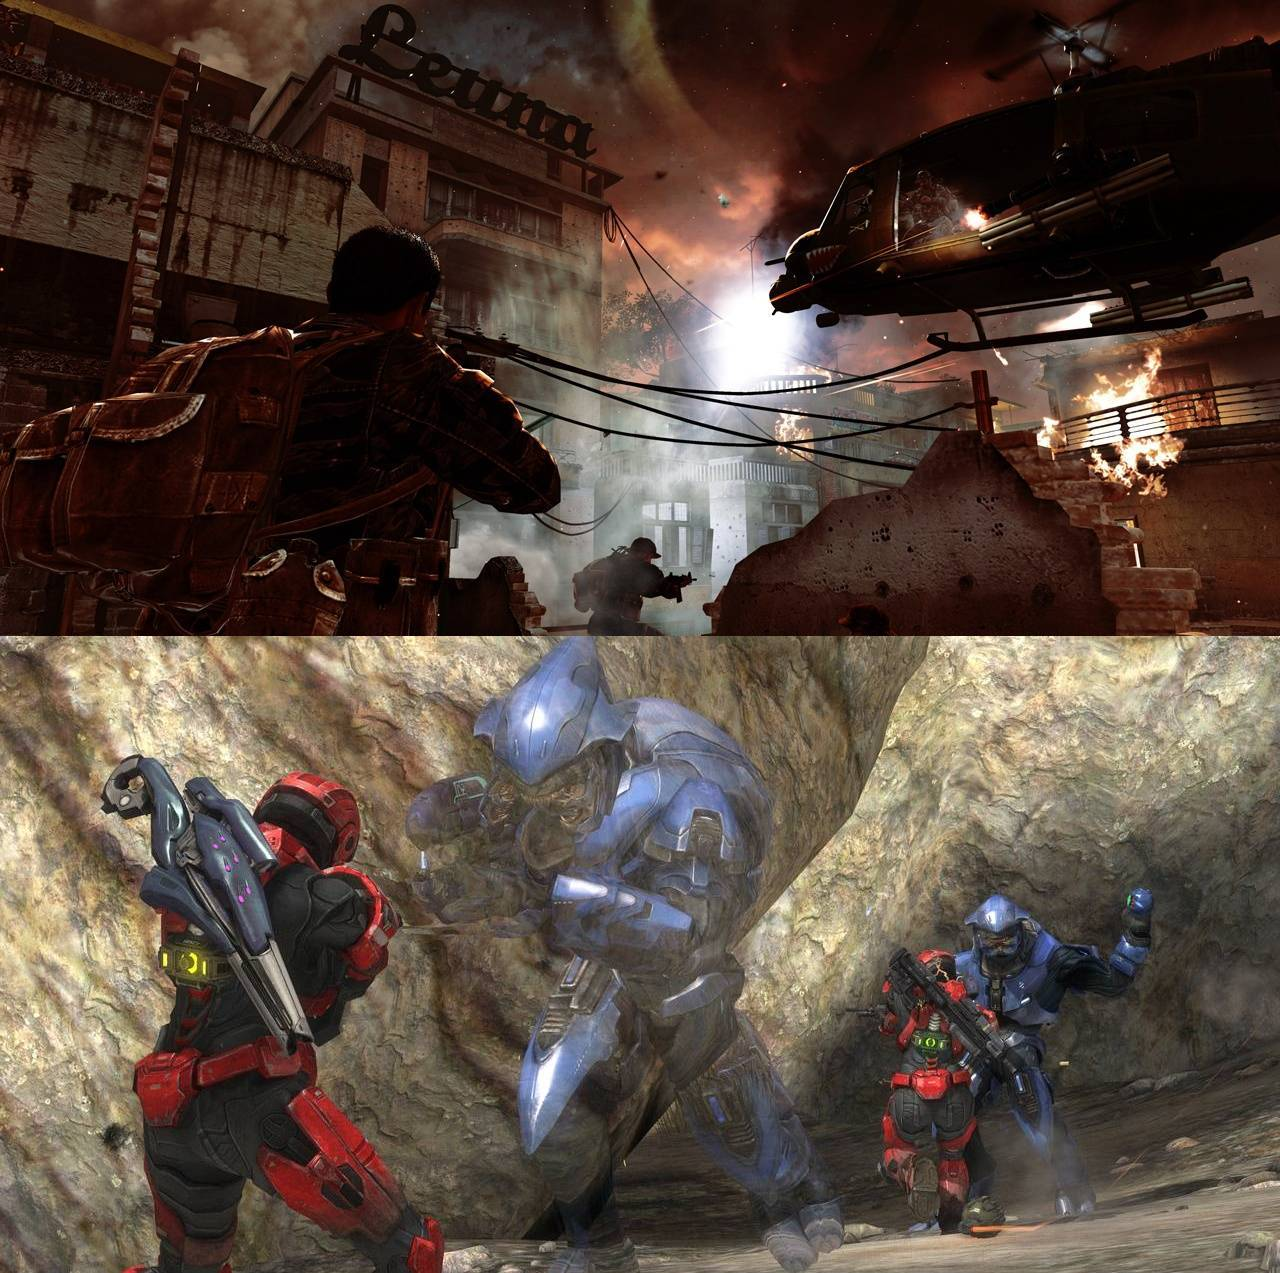 call_of_duty_black_ops_versus_halo_reach_2